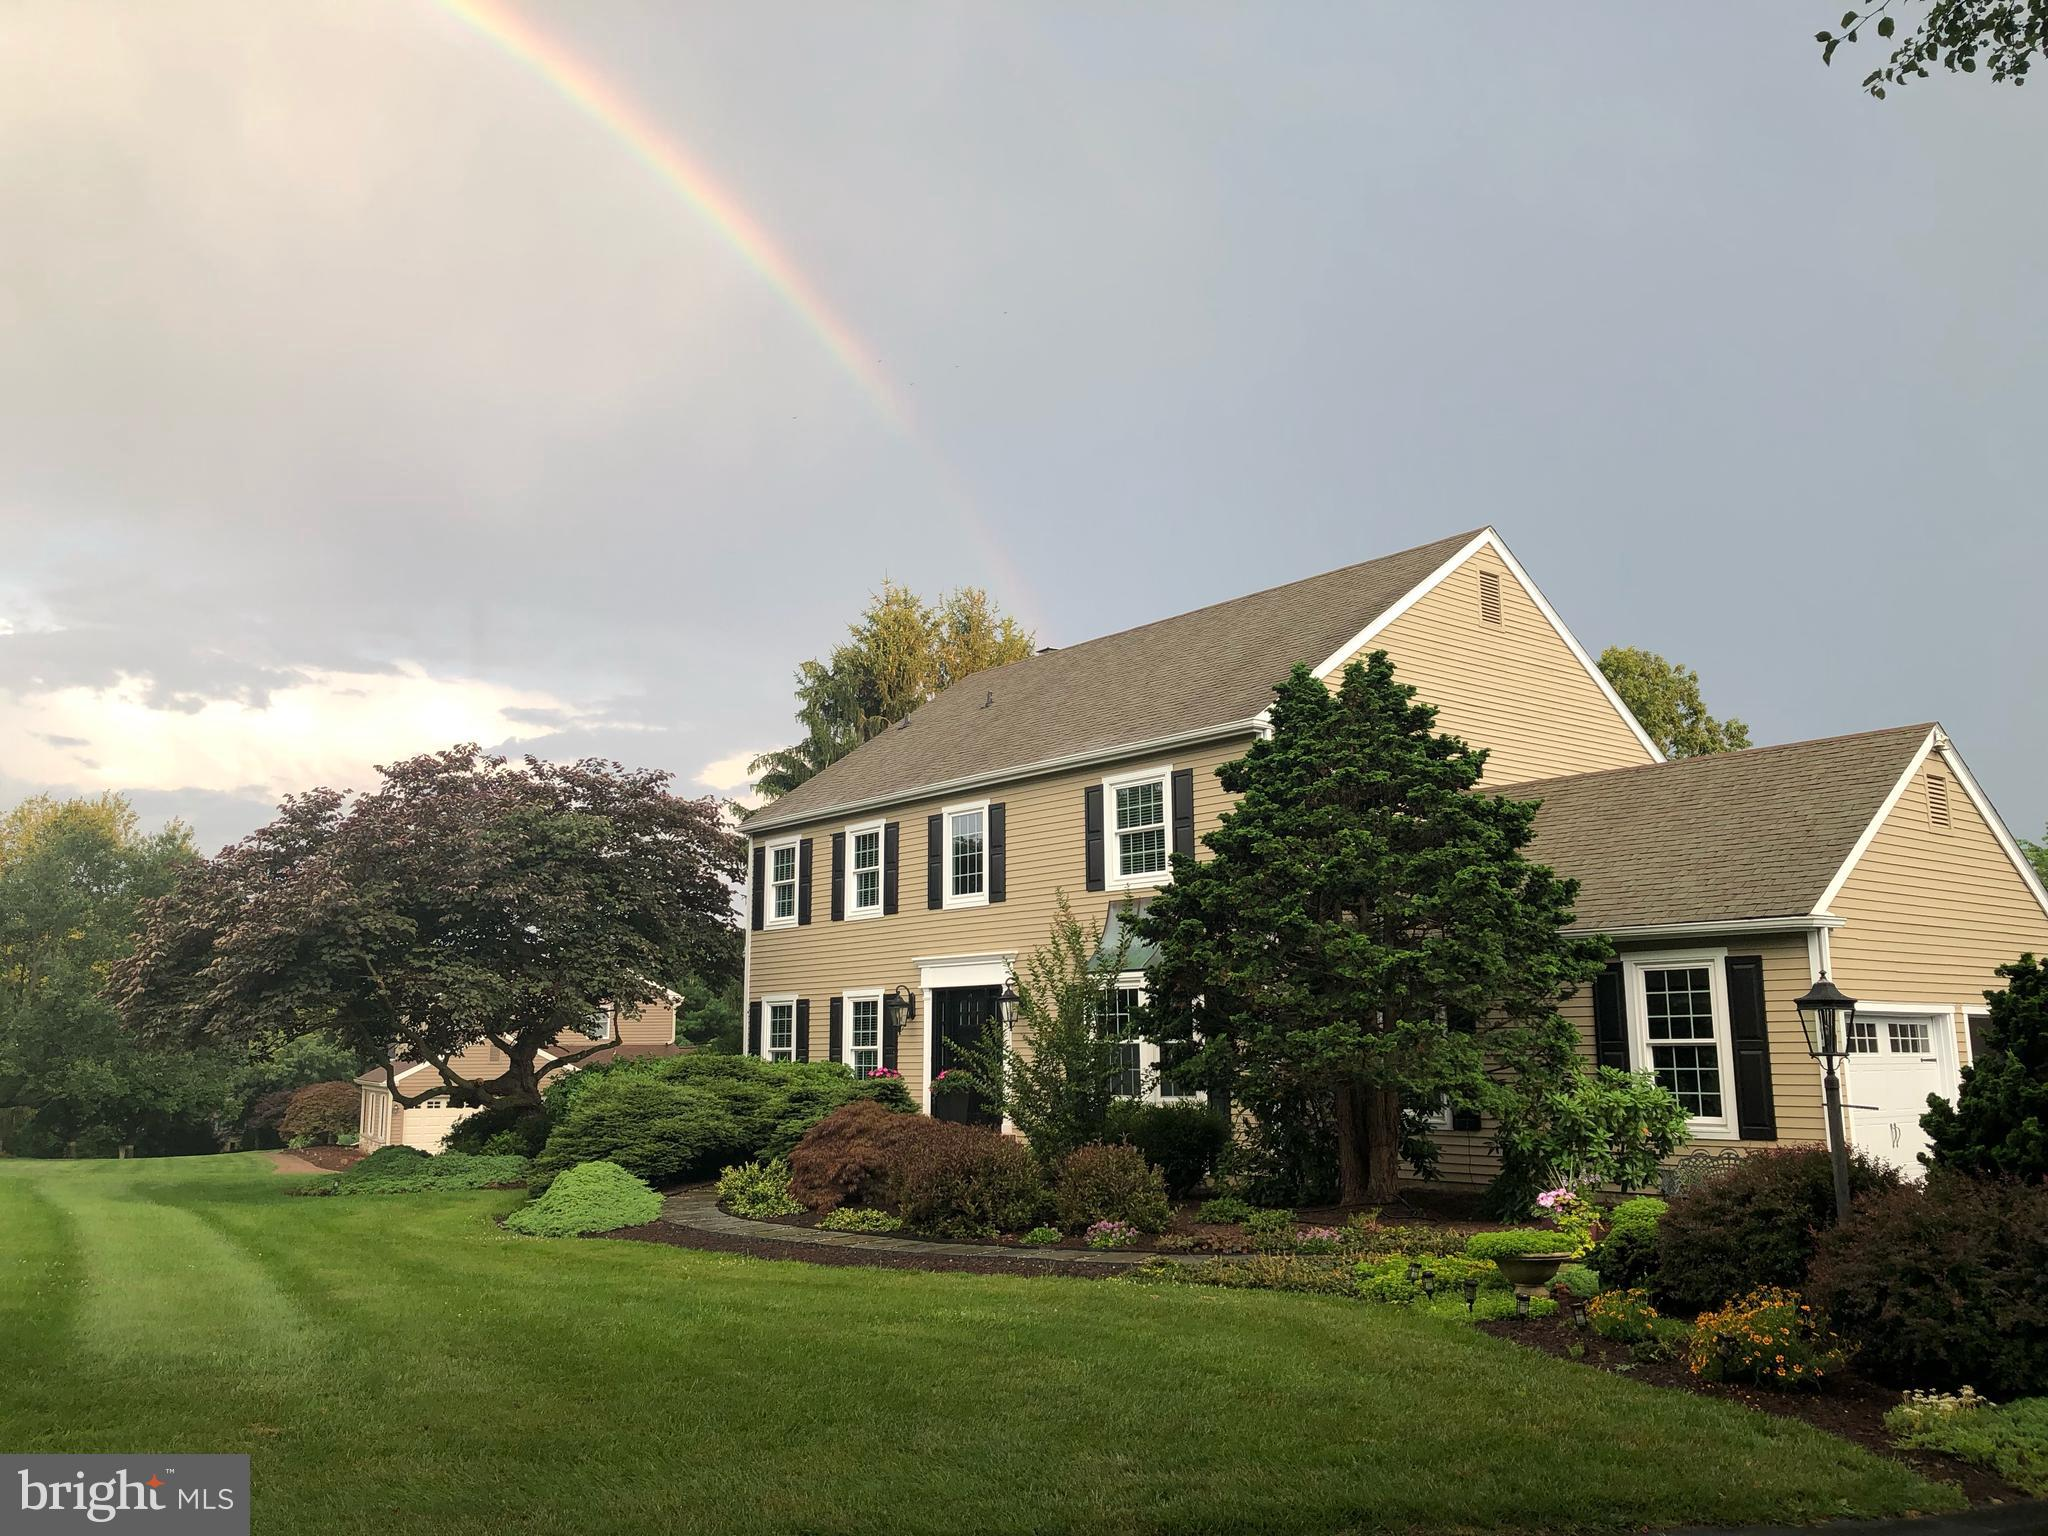 """Welcome to an excellent maintained and updated throughout """"Chester County Colonial"""". This home is absolutely """"turn key / move in ready"""" as the current owners spared no expense or hard work currently and over the years to create the one of a kind family home. Located in very quiet and quaint neighborhood; the one acre lot provides all the privacy needed to enjoy the beautiful pool w/spa along with sufficient outdoor space to barbecue and visit with your friends and family. As you enter the home, you are immediately greeted by the beautiful hardwood floors which you will realize run throughout the home. To the right is the recently painted dining room with its front bay window, chair railing and stately crown molding; which actually runs throughout every room in the home. Adjacent to the dining room is the butler's pantry and the fully renovated gourmet kitchen with its stainless steel appliances, 10' center island with seating for 6, beautiful white cabinets, granite countertops and sliders to the deck and outdoor space.  The open layout combines the kitchen and family room with the new gas fireplace, peninsula with seating, crown molding and plantation shudders. The full basement was newly painted throughout with new carpeting installed and also provides sufficient storage with easy access to the home's mechanicals. The second floor has a master suite with dual sink vanity, large soaking tub, and shower. The other 3 large bedrooms, center hall, laundry room with new washer and dryer, hall bath complete the 2nd floor. The pool, hot tub, waterfall provide the perfect outdoor oasis for anything from a private retreat to hosting family and friends for that special get together while being secluded due to that large backyard. The borough of West Chester is just a short 5 minute drive and there's easy access to routes 322 and 202 for any trip to King of Prussia, Downingtown, Wilmington, and just a 30 minute drive to the Philadelphia airport. Please make your appointment a"""